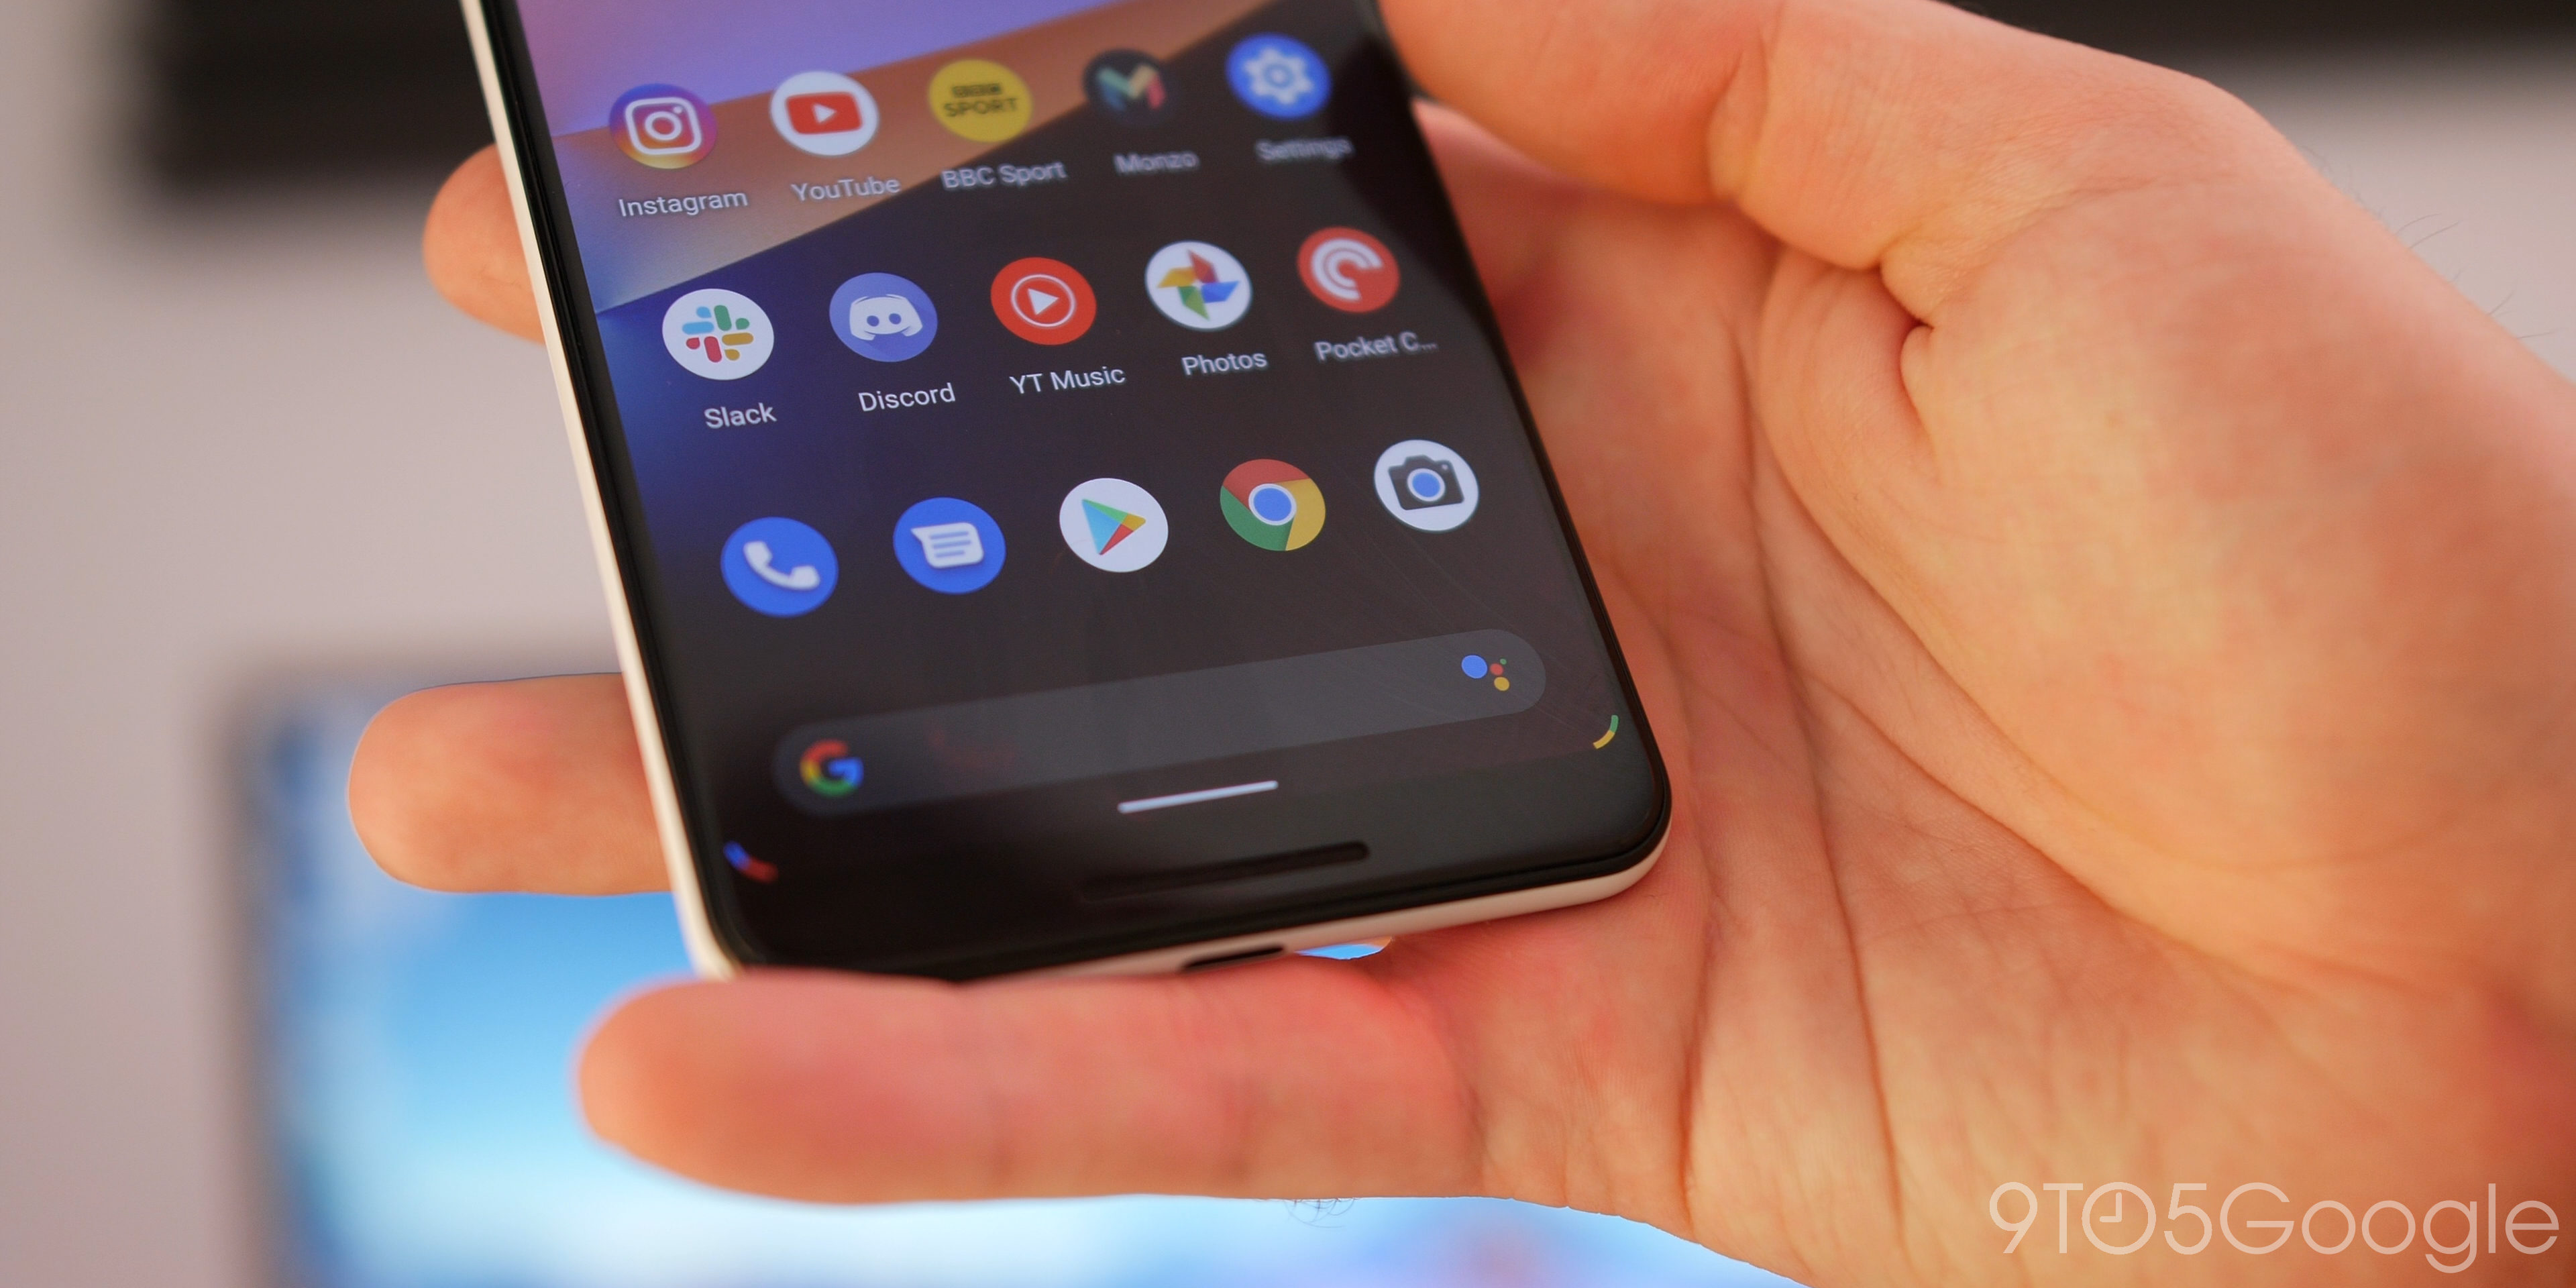 Google's Android team talks Android 10 in interview - 9to5Google